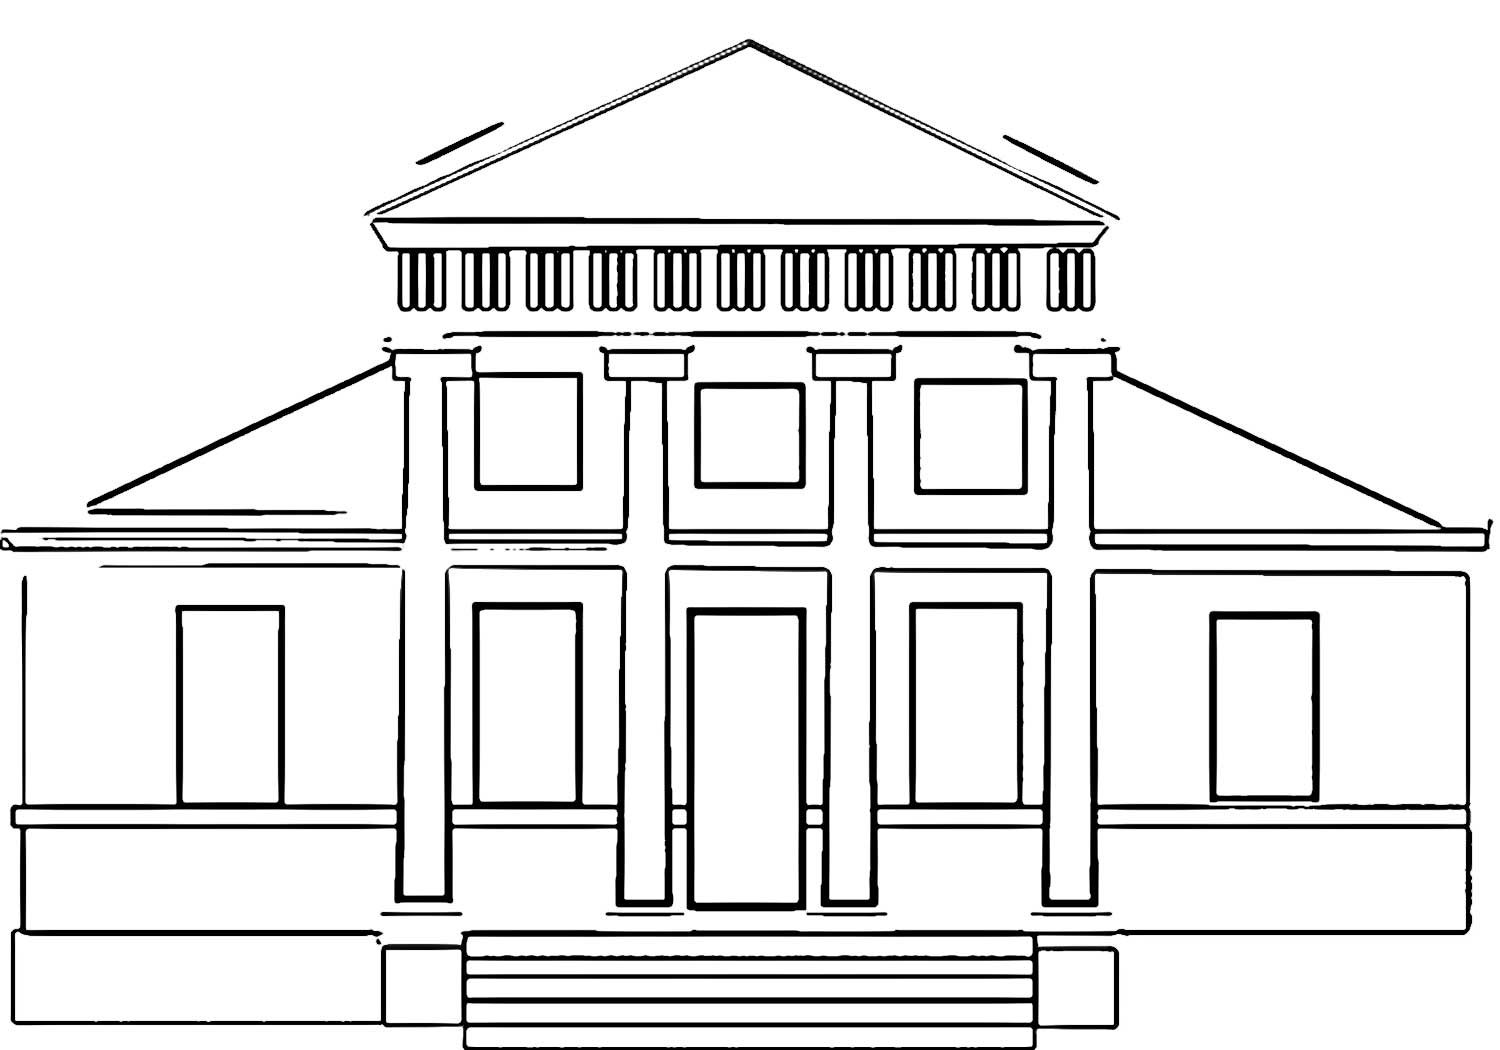 Building Coloring Page Free Printable Building H School Coloring Page 08i Wecoloring